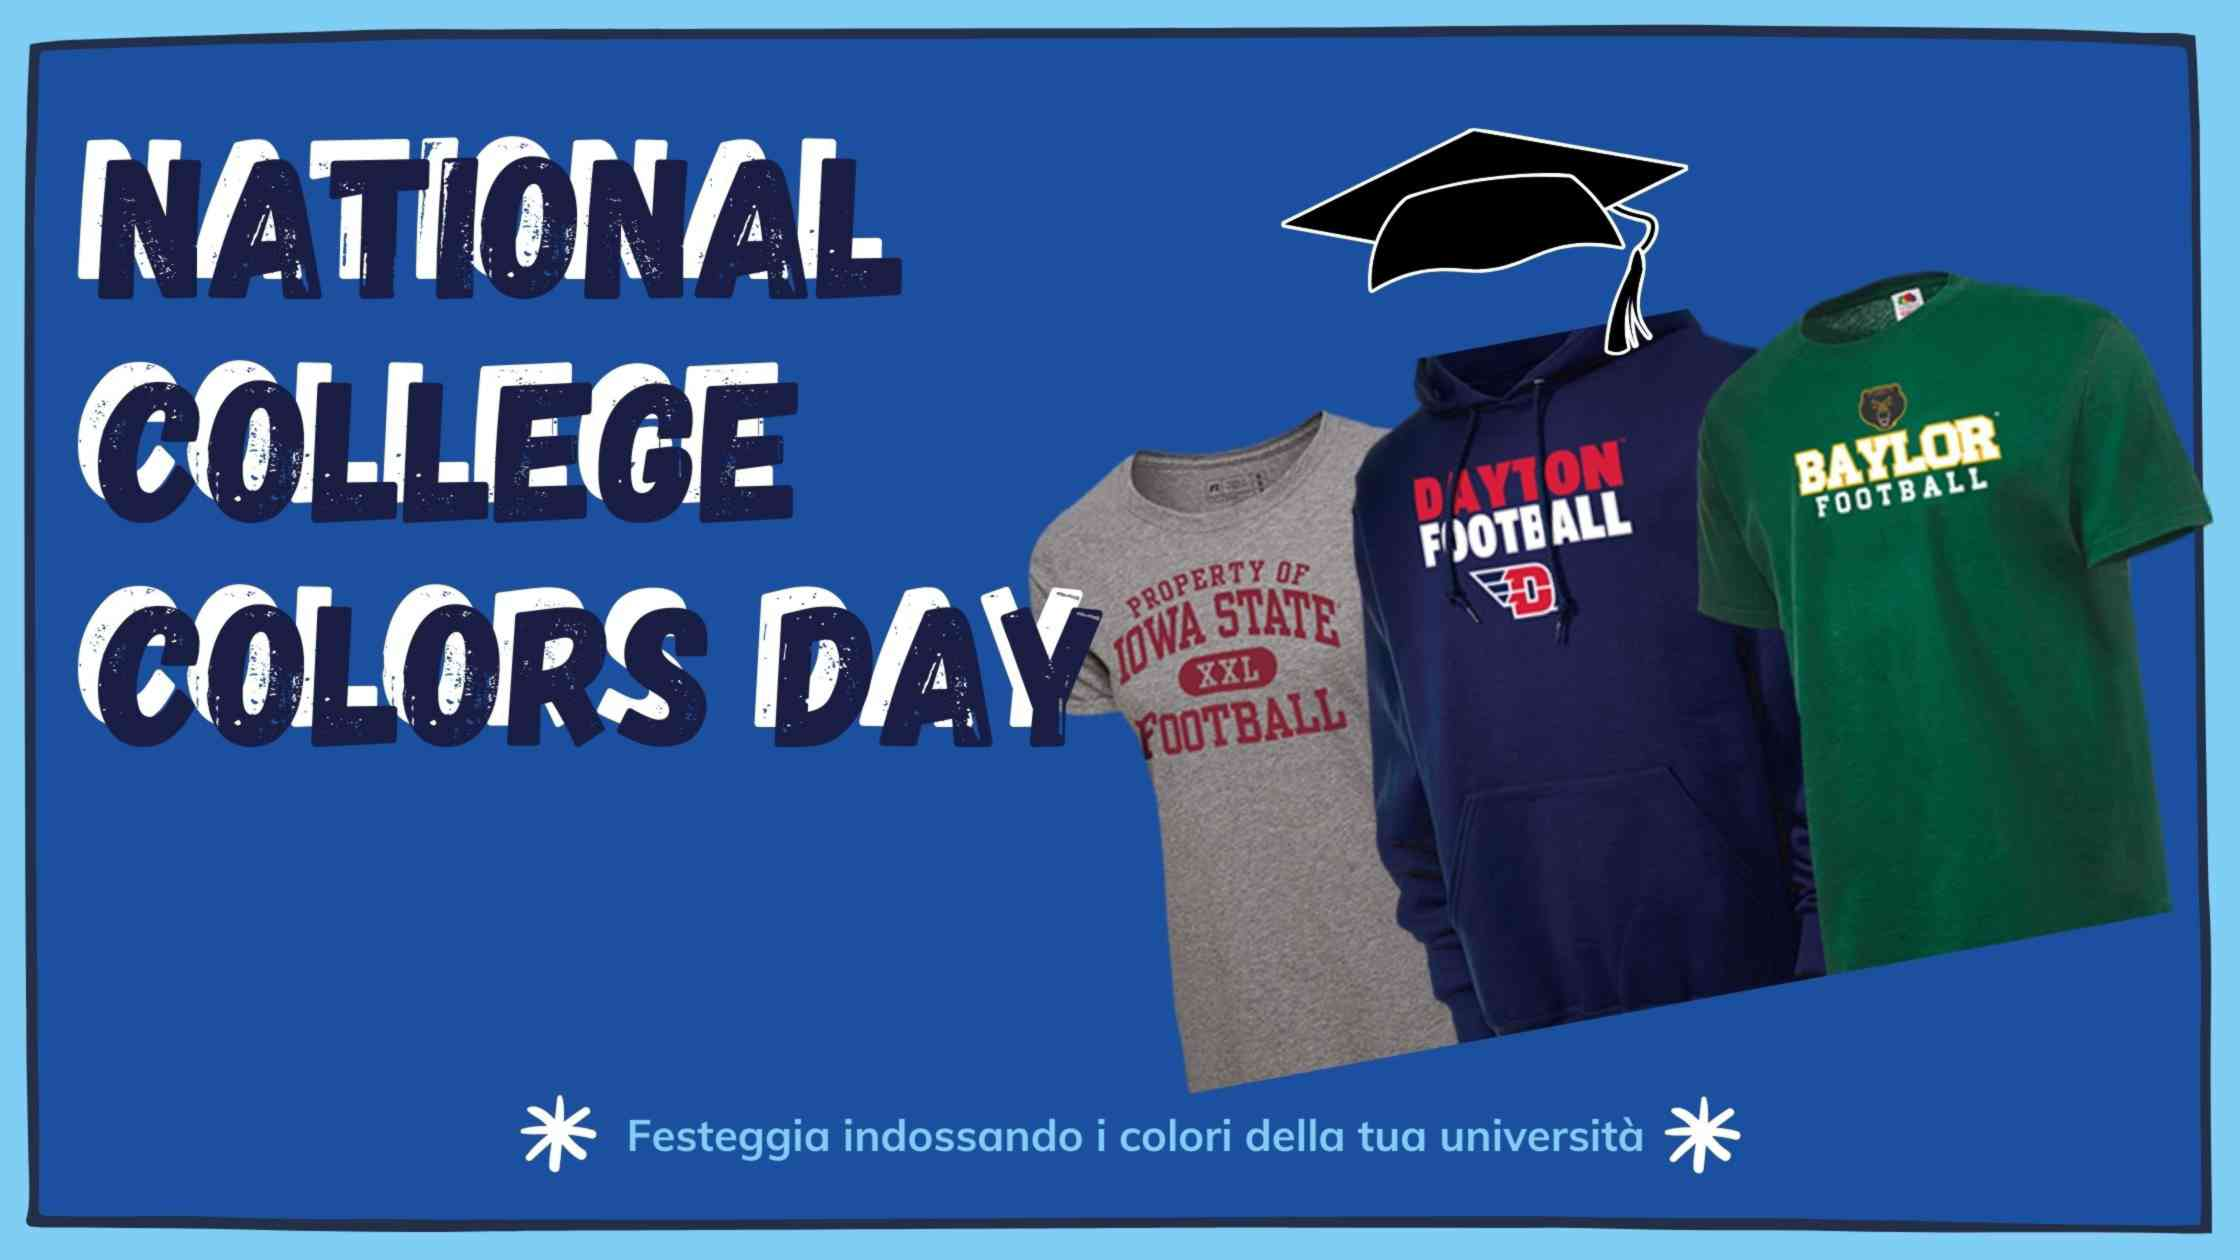 National College Day